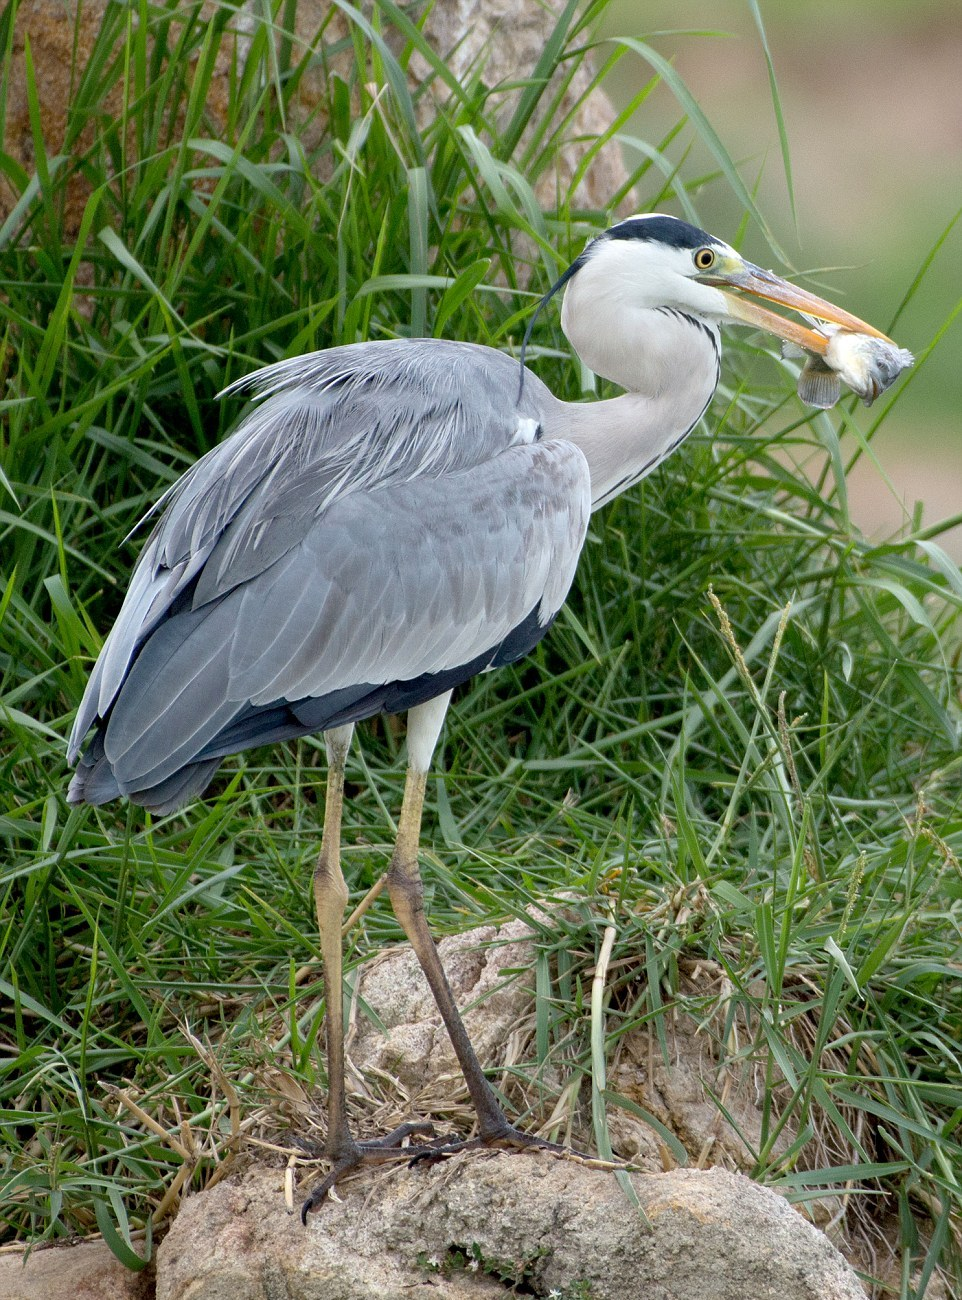 like-the-heron-with-the-snake-fish-shared-07